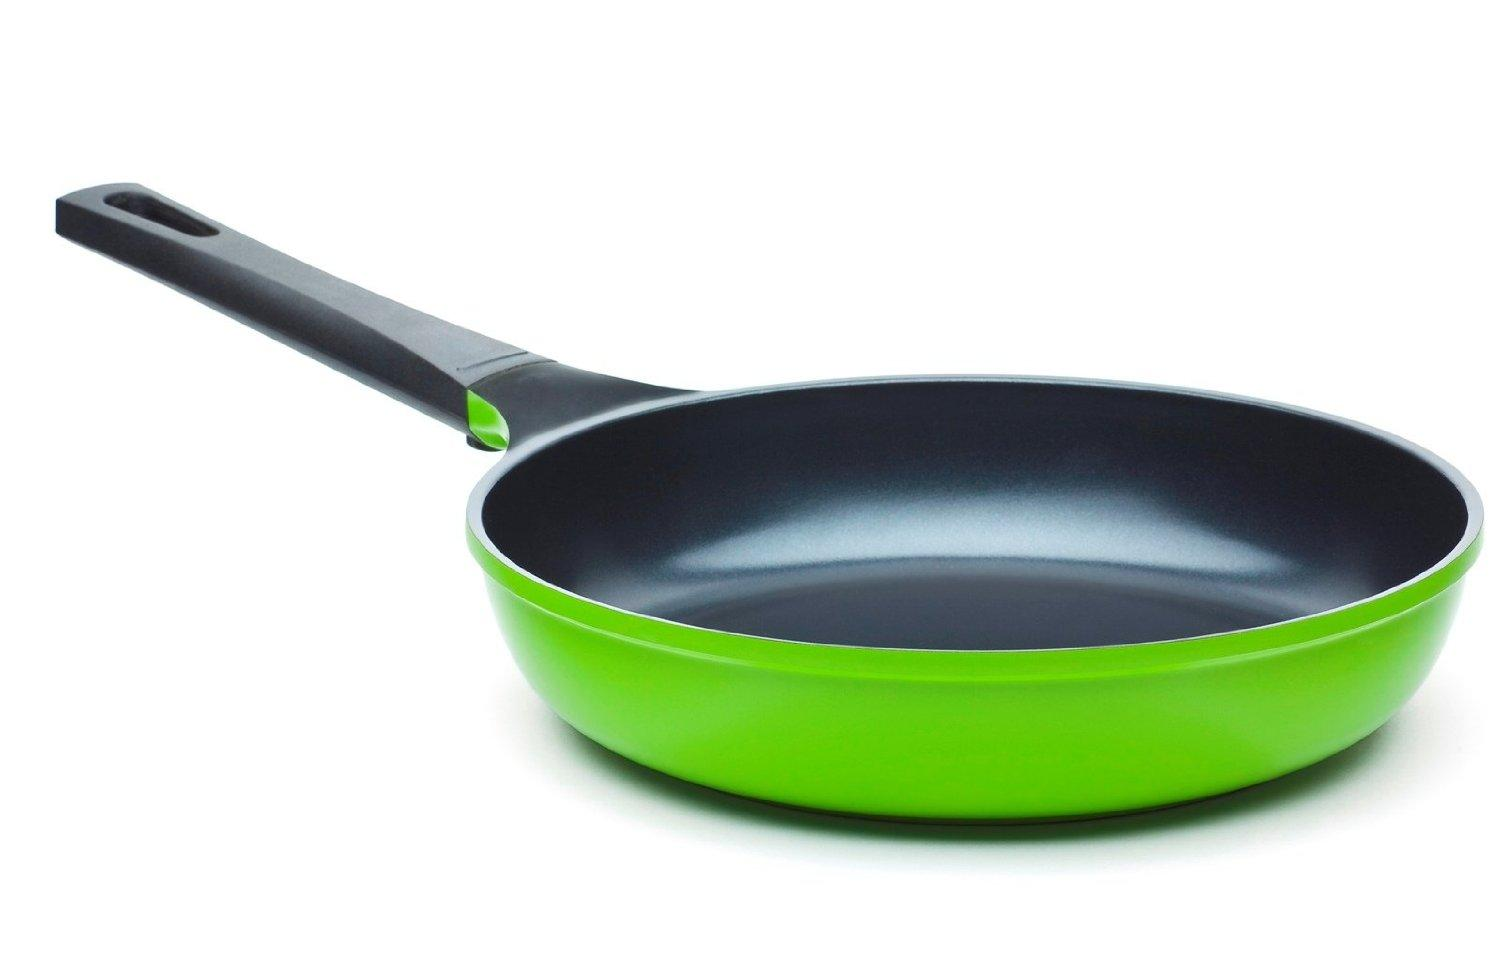 The Green Earth Frying Pan by Ozeri, with Smooth Ceramic Non-Stick Coating (100% PTFE and PFOA Free)